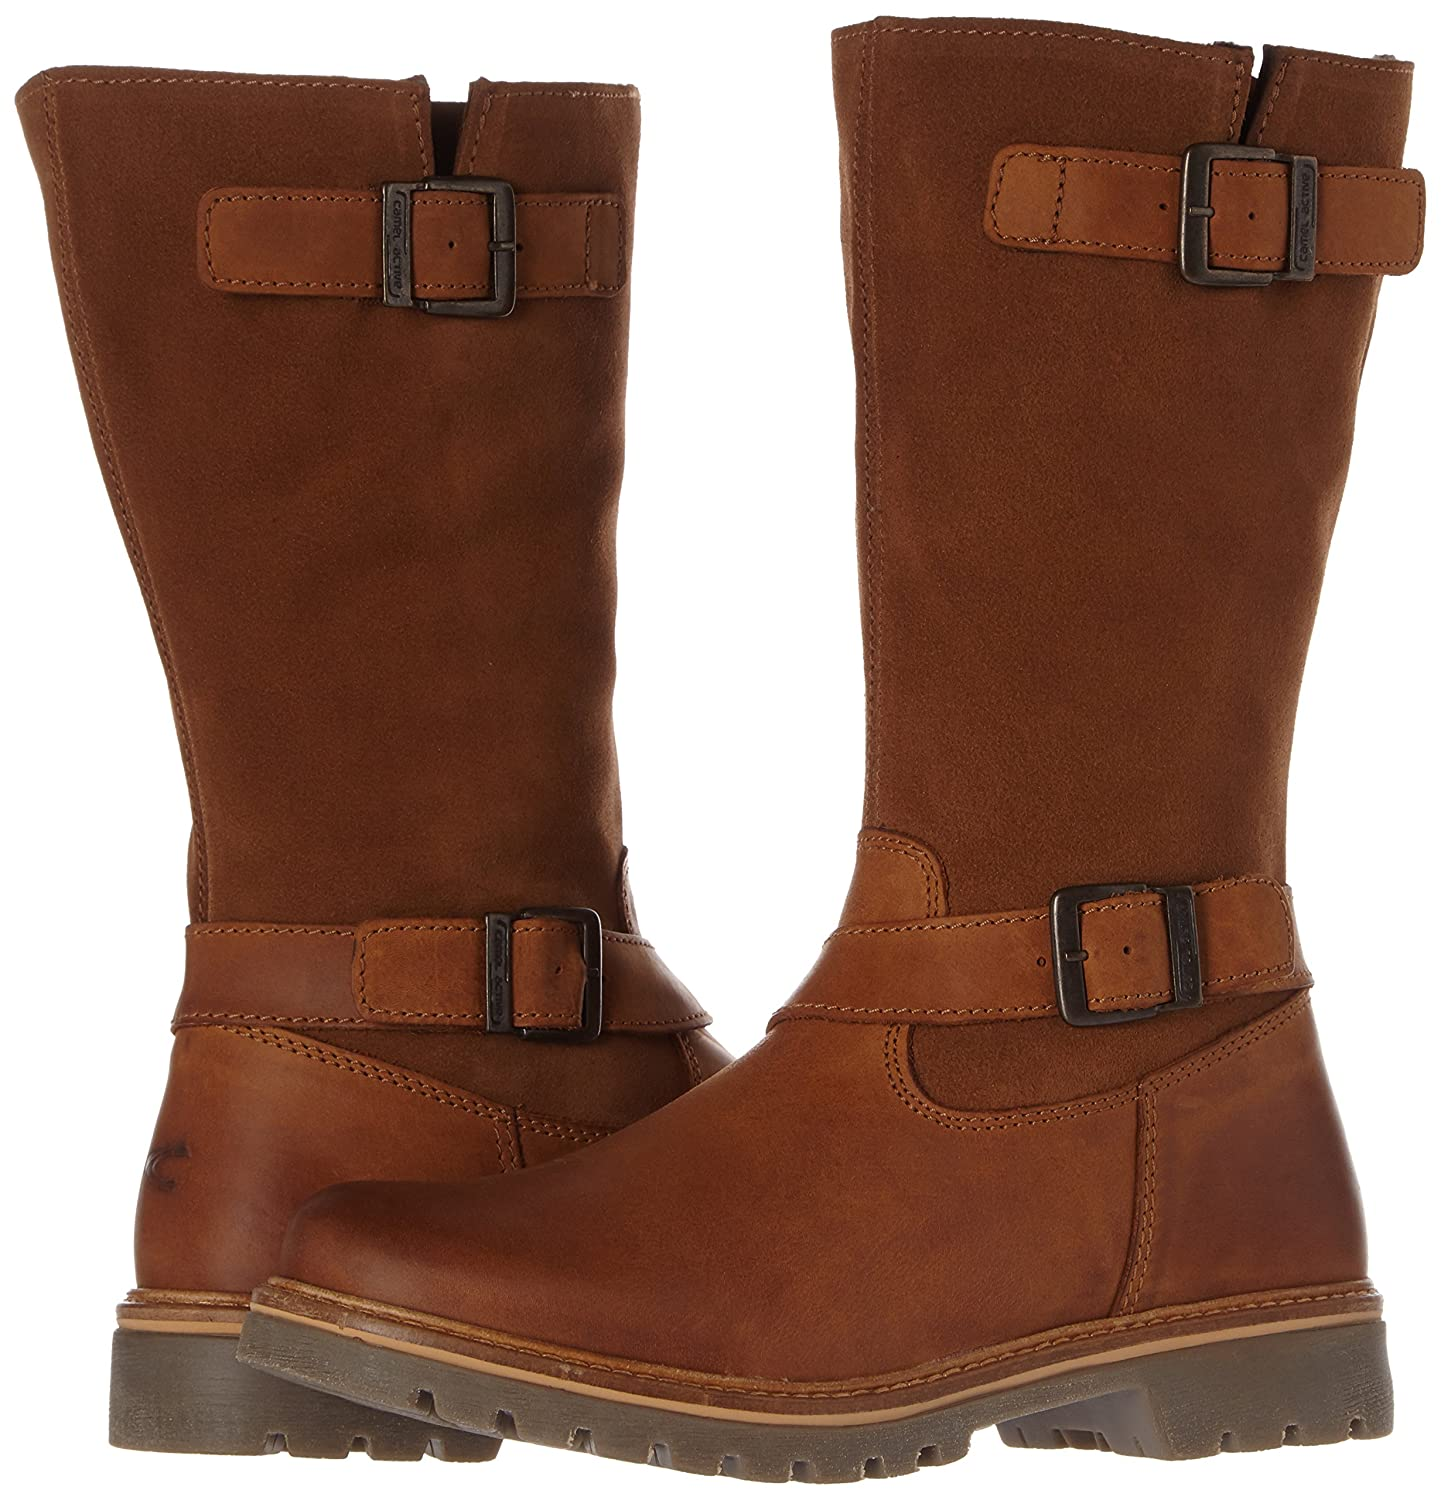 camel active Women's Canberra 74 Boots